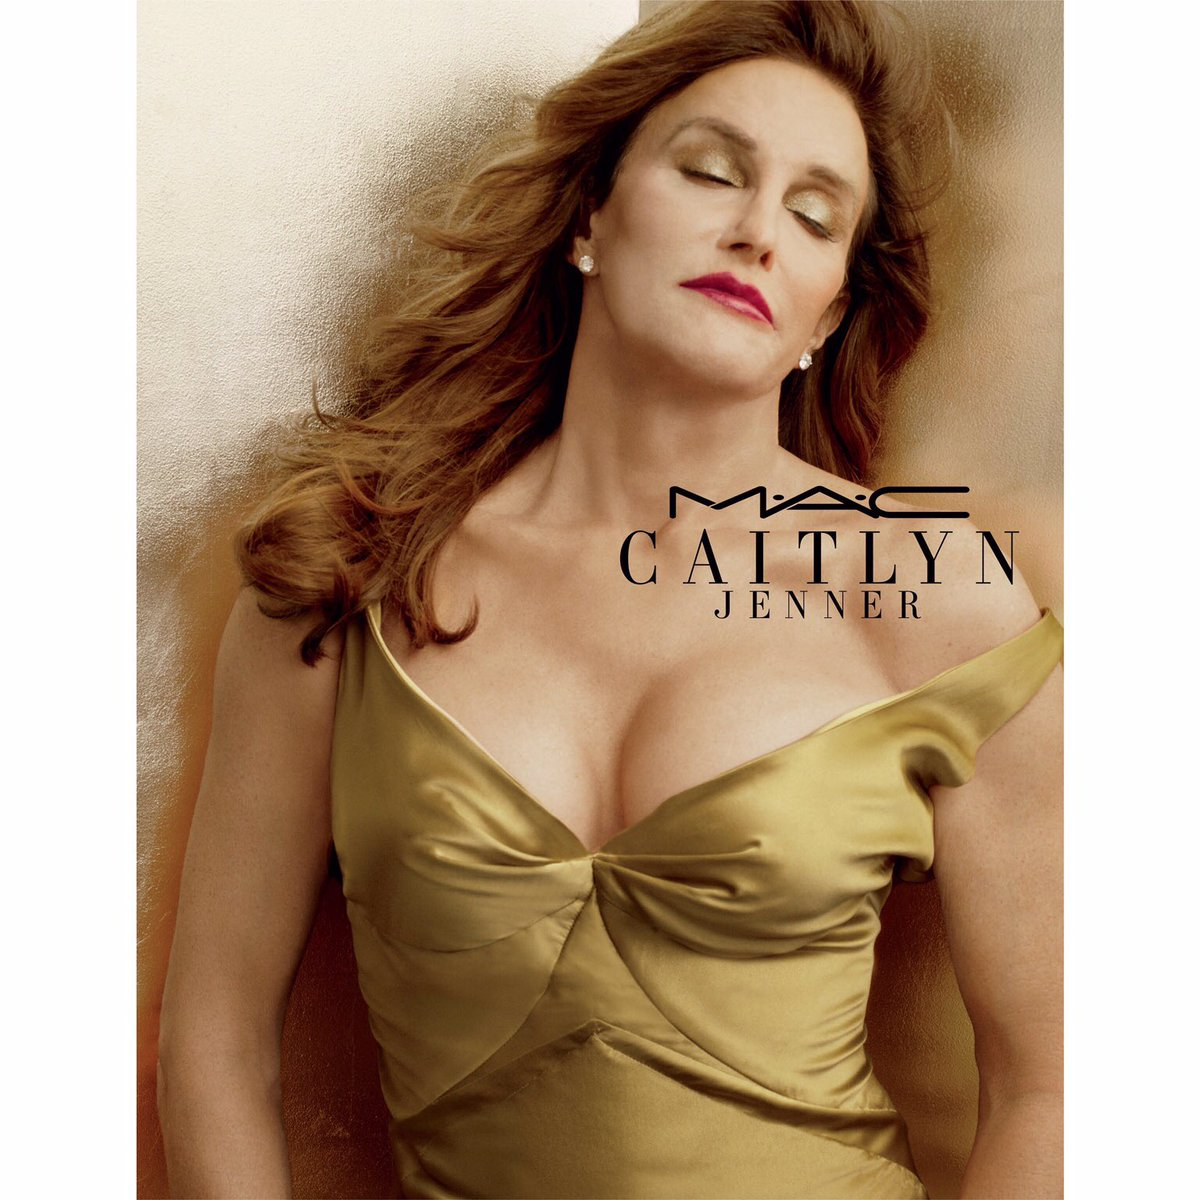 Caitlyn Jenner Announces Mac Line For 'All Sexes. All Ages. All Races'